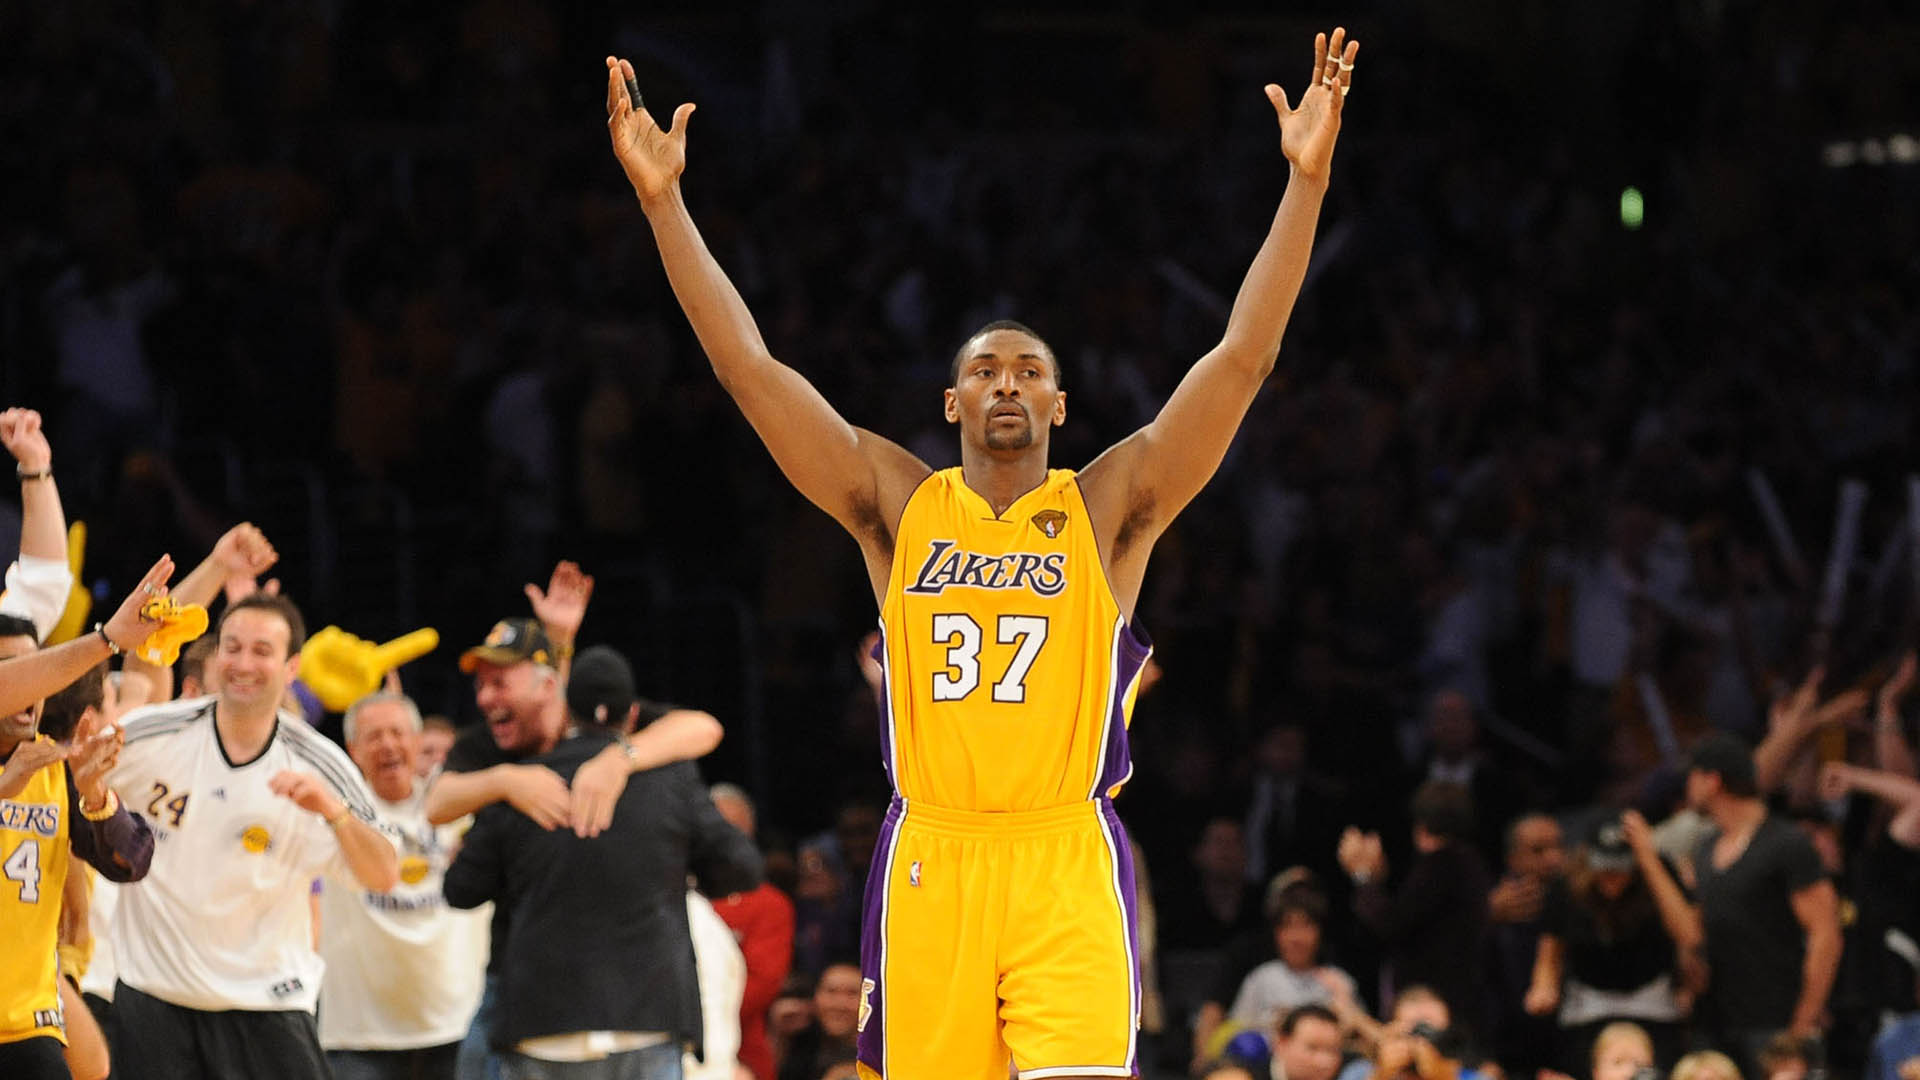 Top NBA Finals moments: Ron Artest's late 3-pointer seals title for Lakers